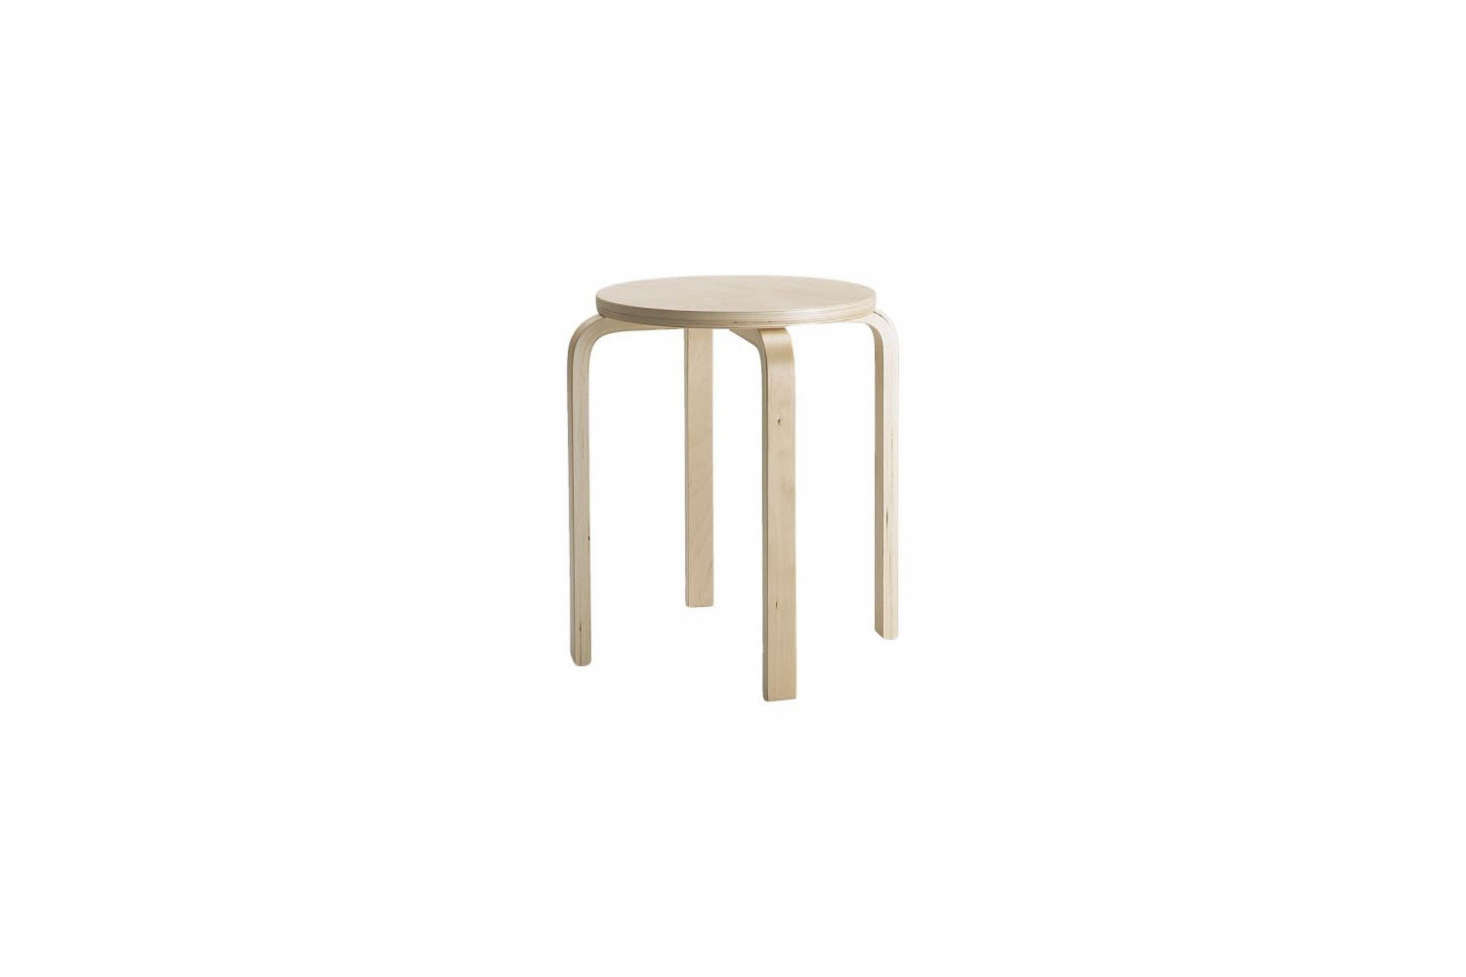 I've had a collection of Ikea Frosta stools for more than a decade, and they've held up well. For a couple of years Ikea dropped them from the lineup but fortunately they're back; $14.99 each.